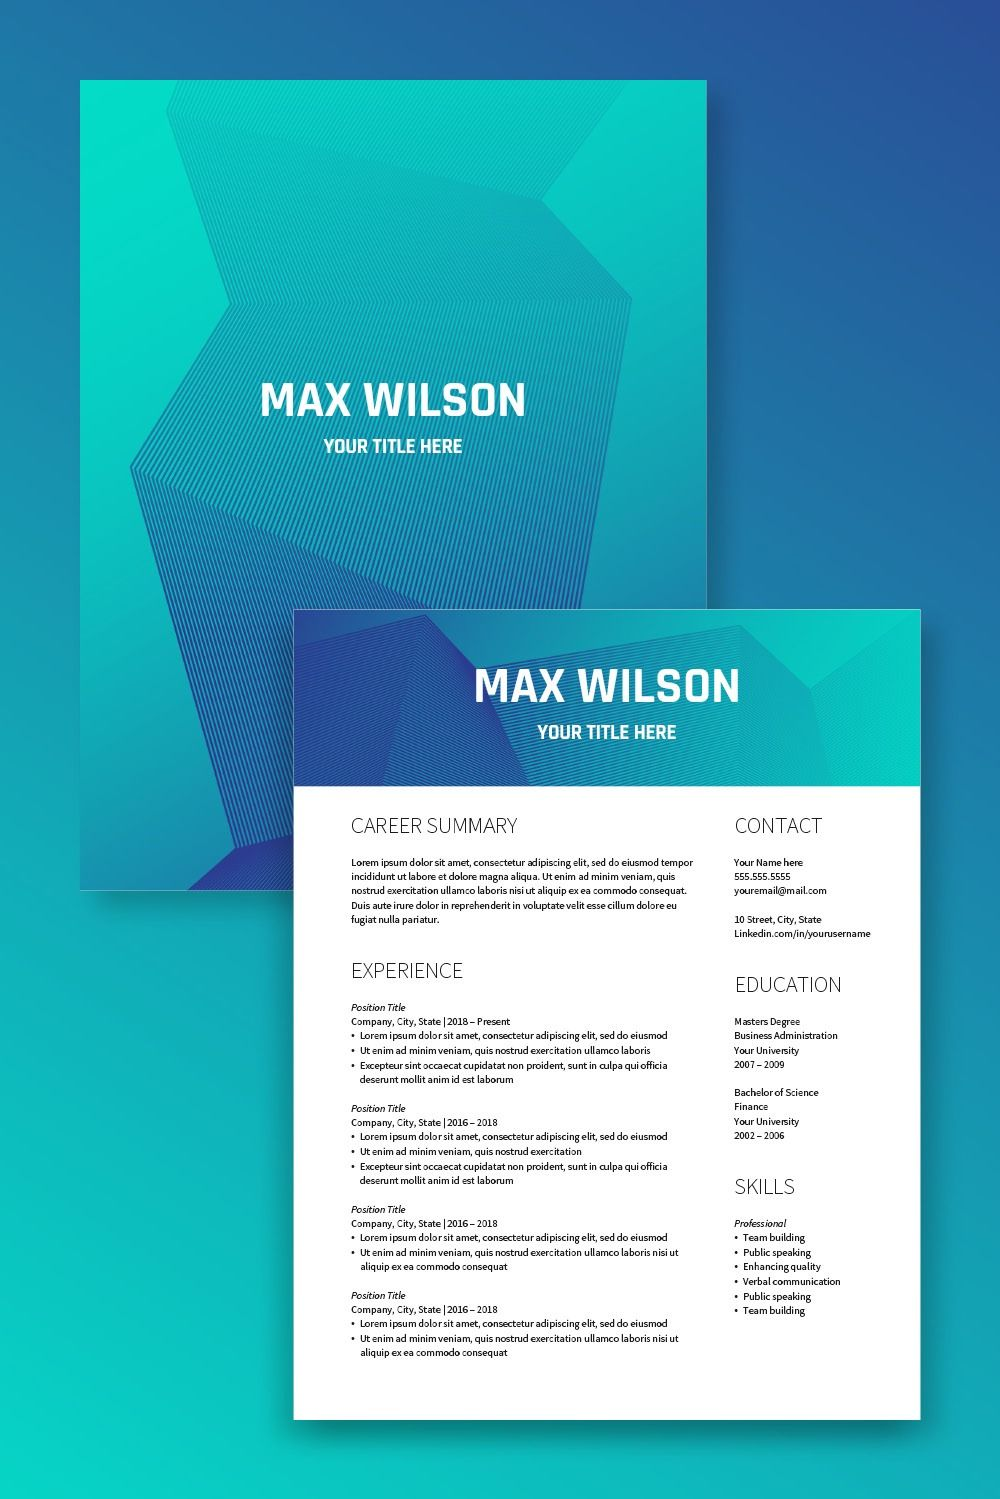 Futuristic And Modern Resume Template For Word And Open Office Cv Template Cv Design Clean Resume Instant Download Lebenslauf Vorlagen Word Microsoft Word Open Office